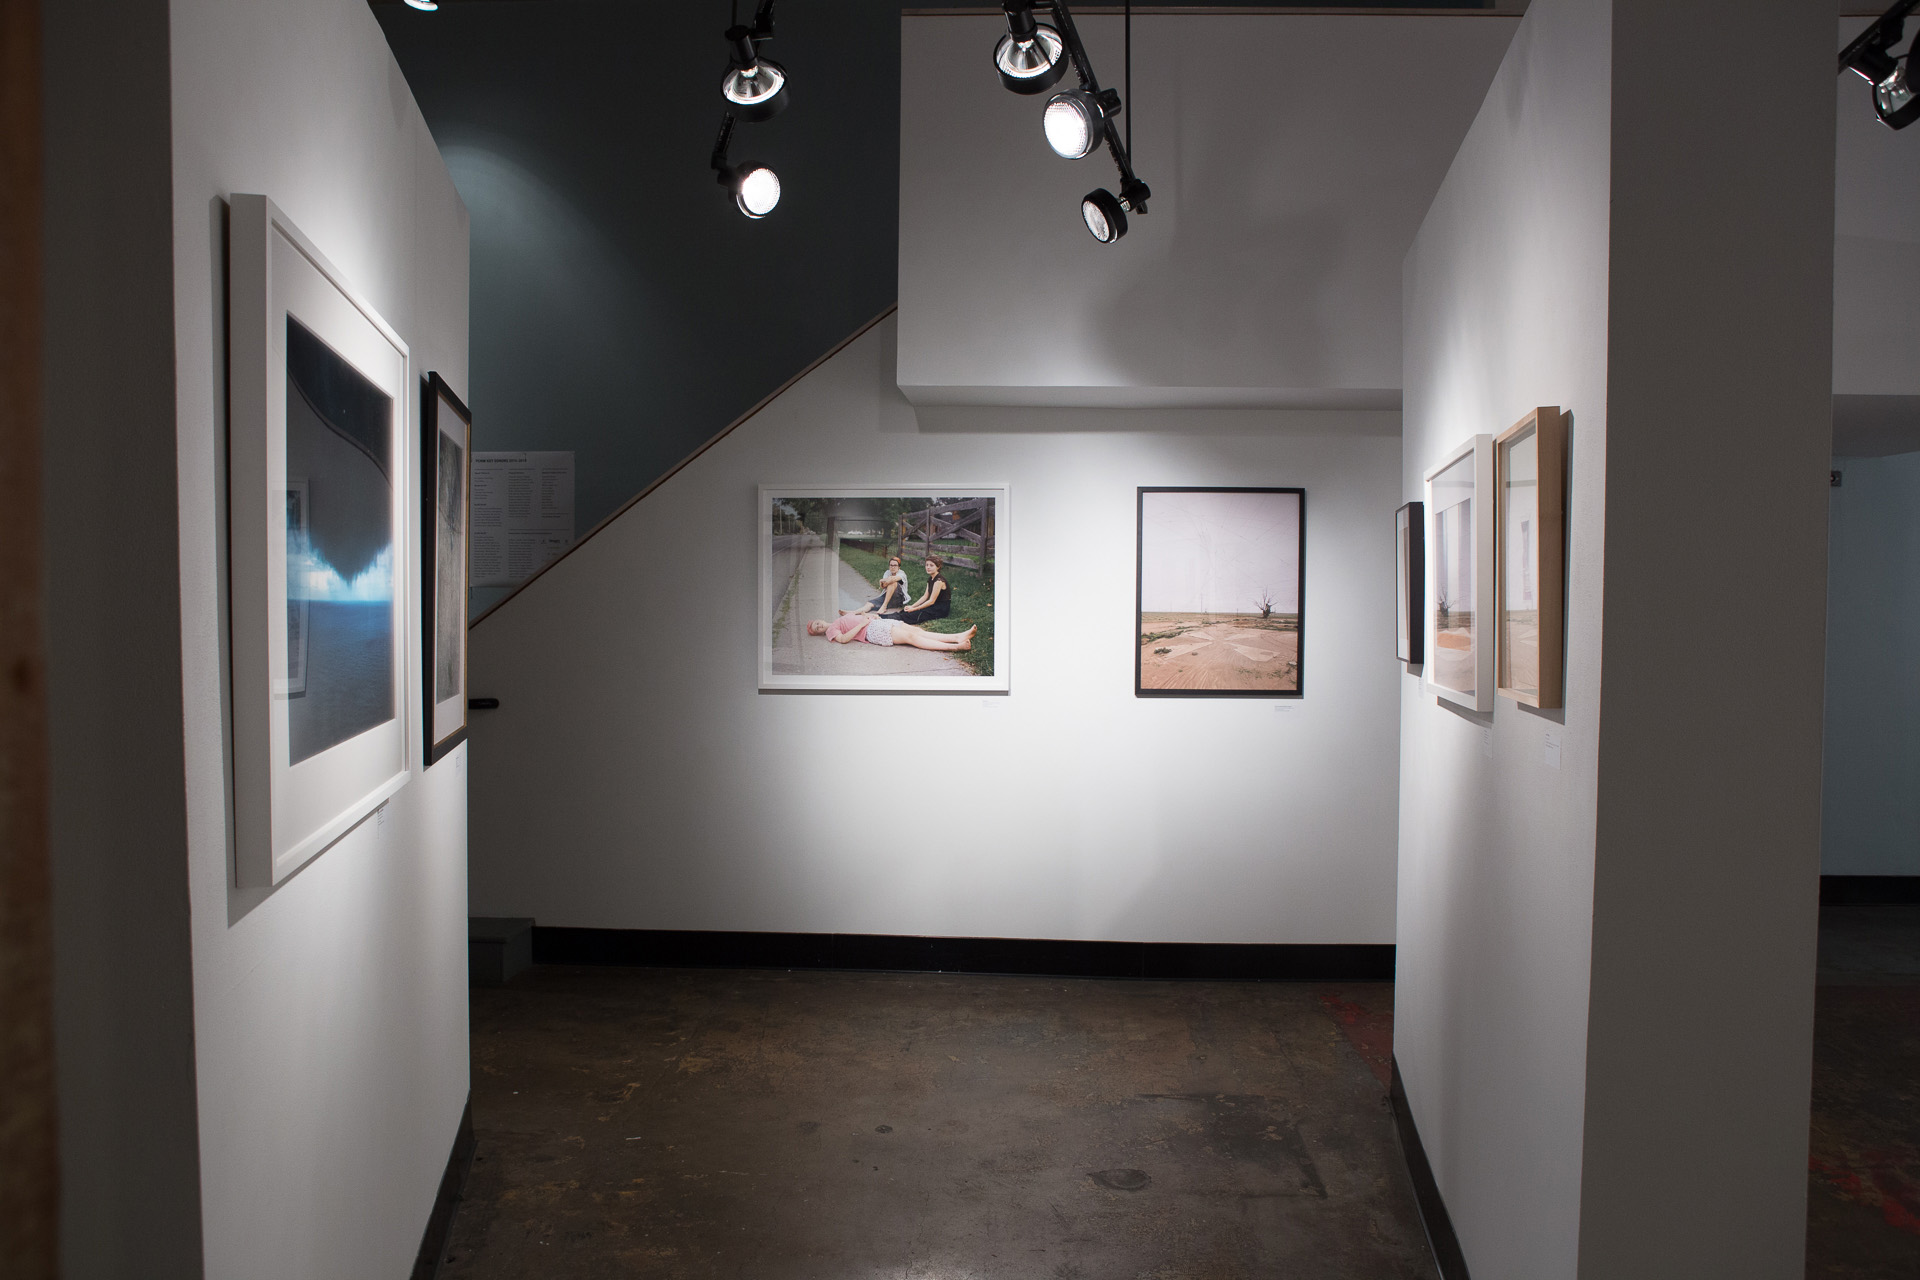 Photos courtesy of Photographic Center North West